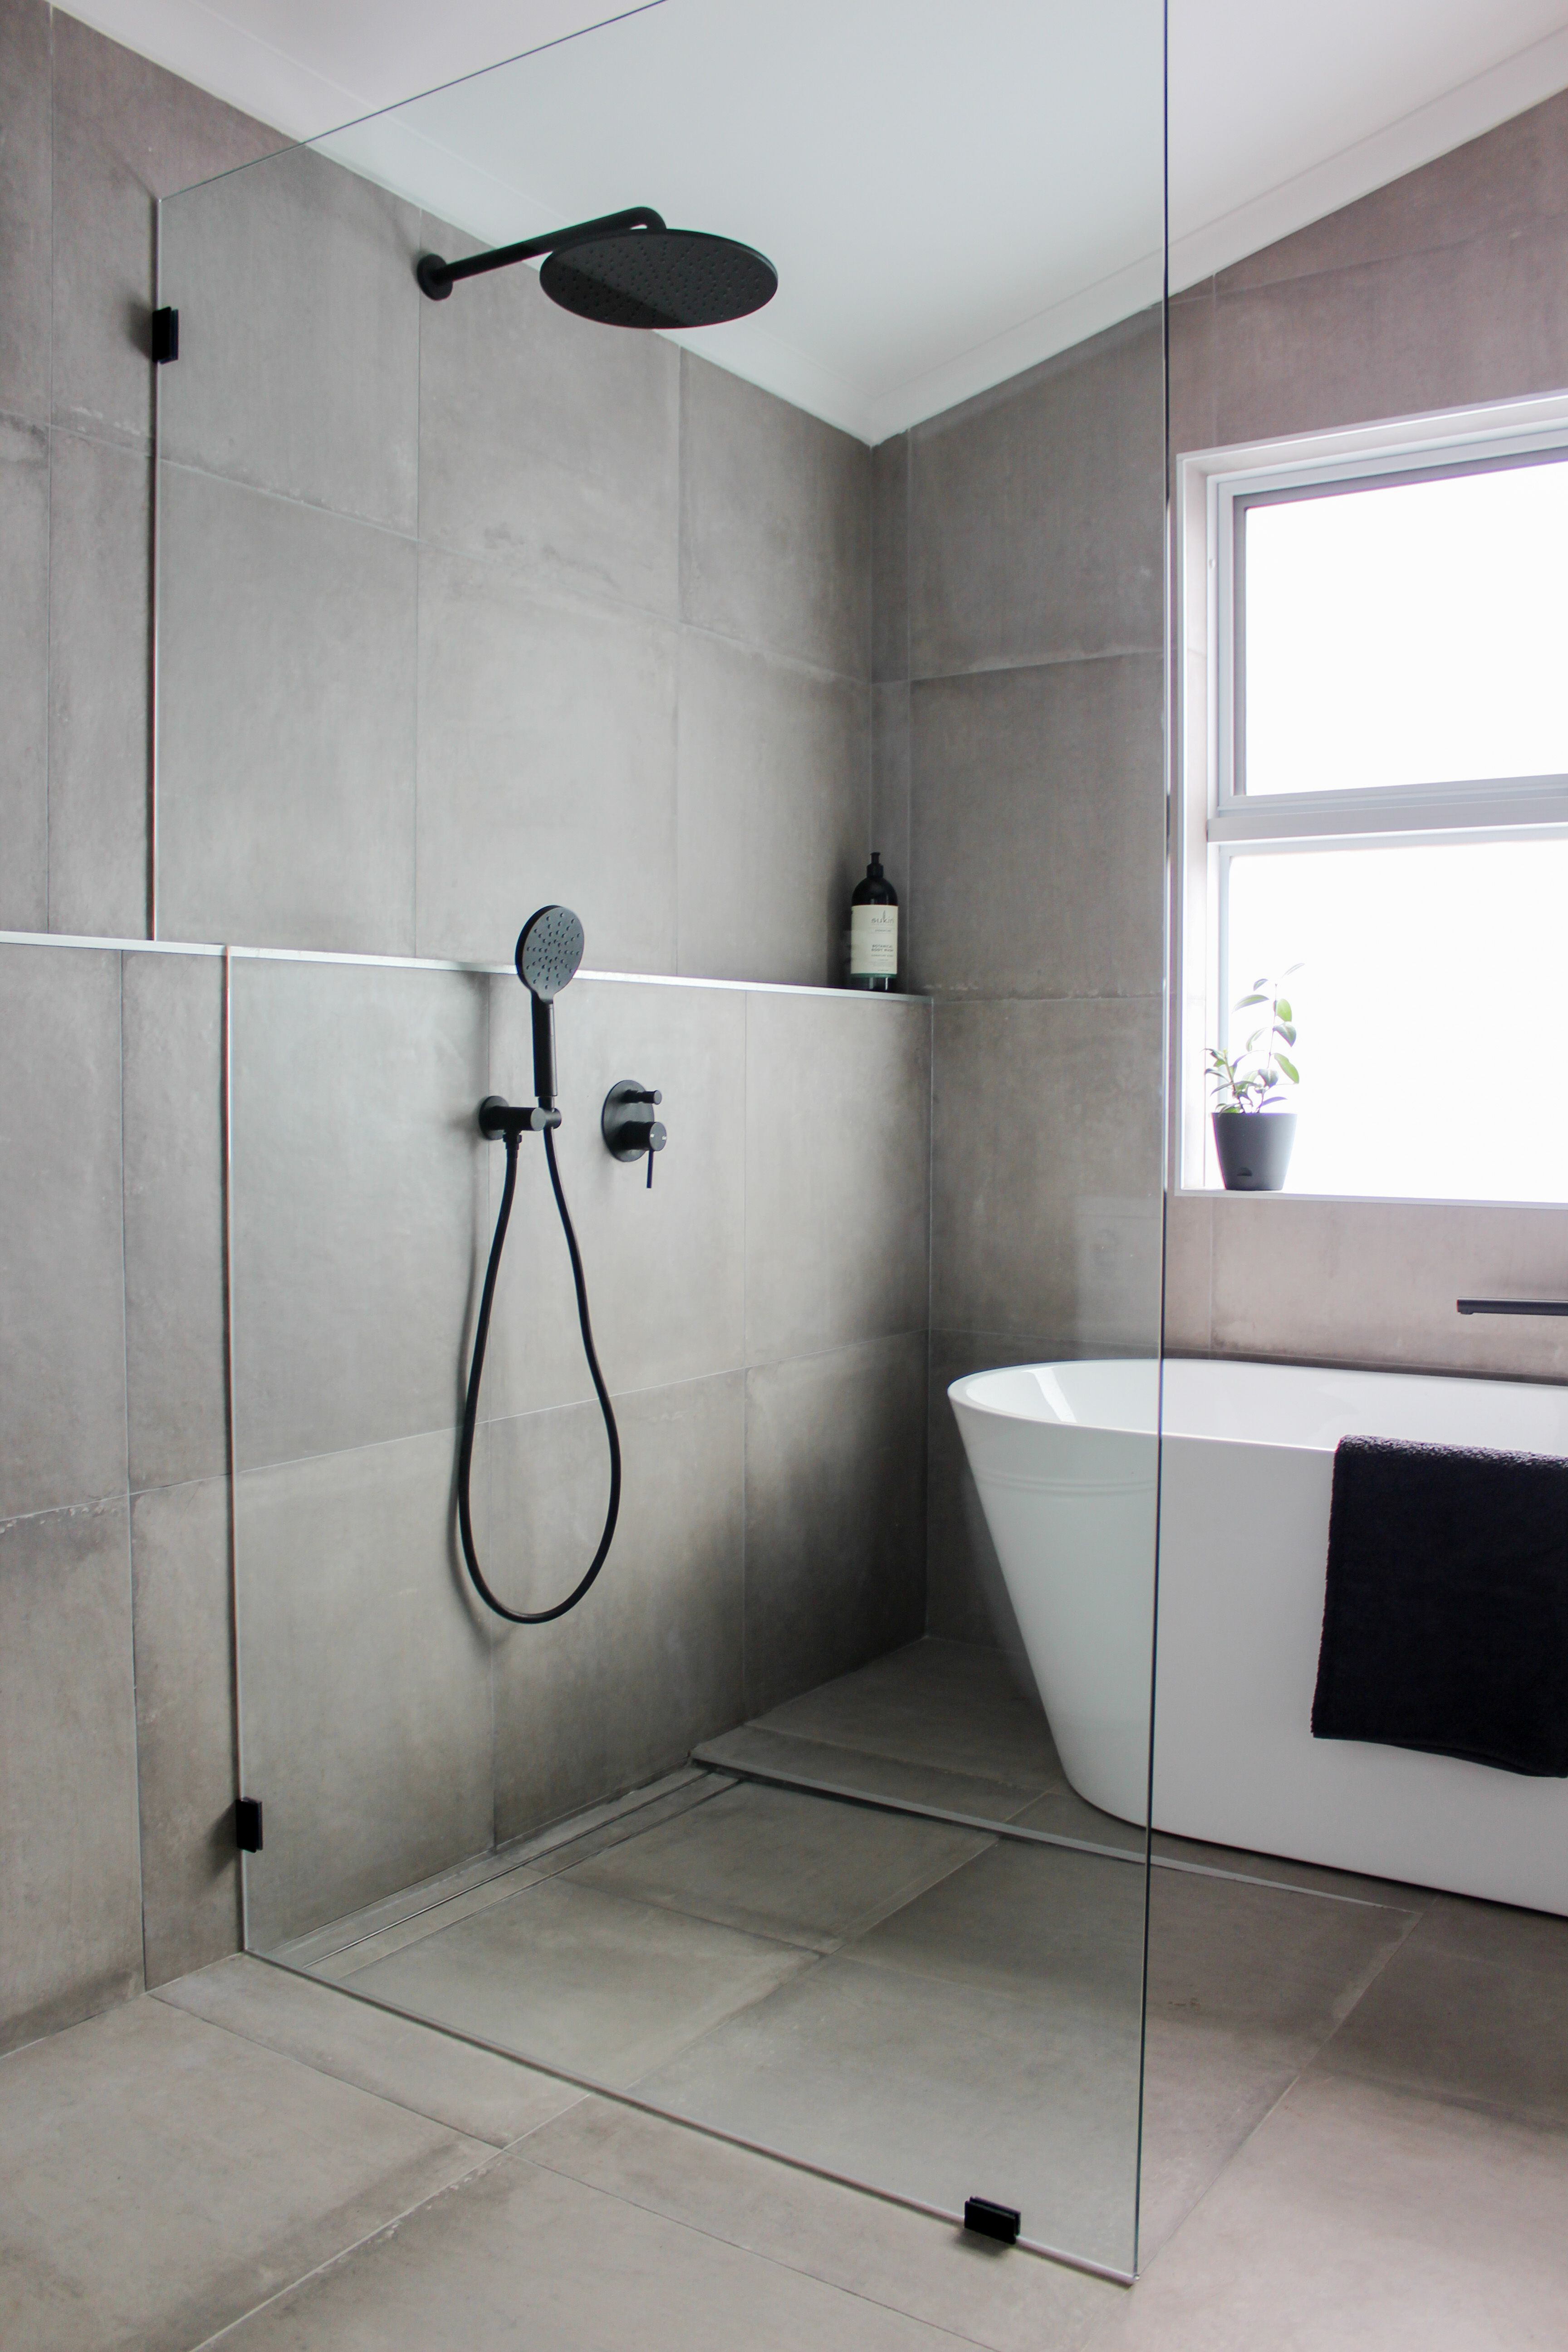 Pin By Tam X On Bathroom Drains In 2020 Concrete Bathroom Bathroom Renovations Concrete Tiles Bathroom